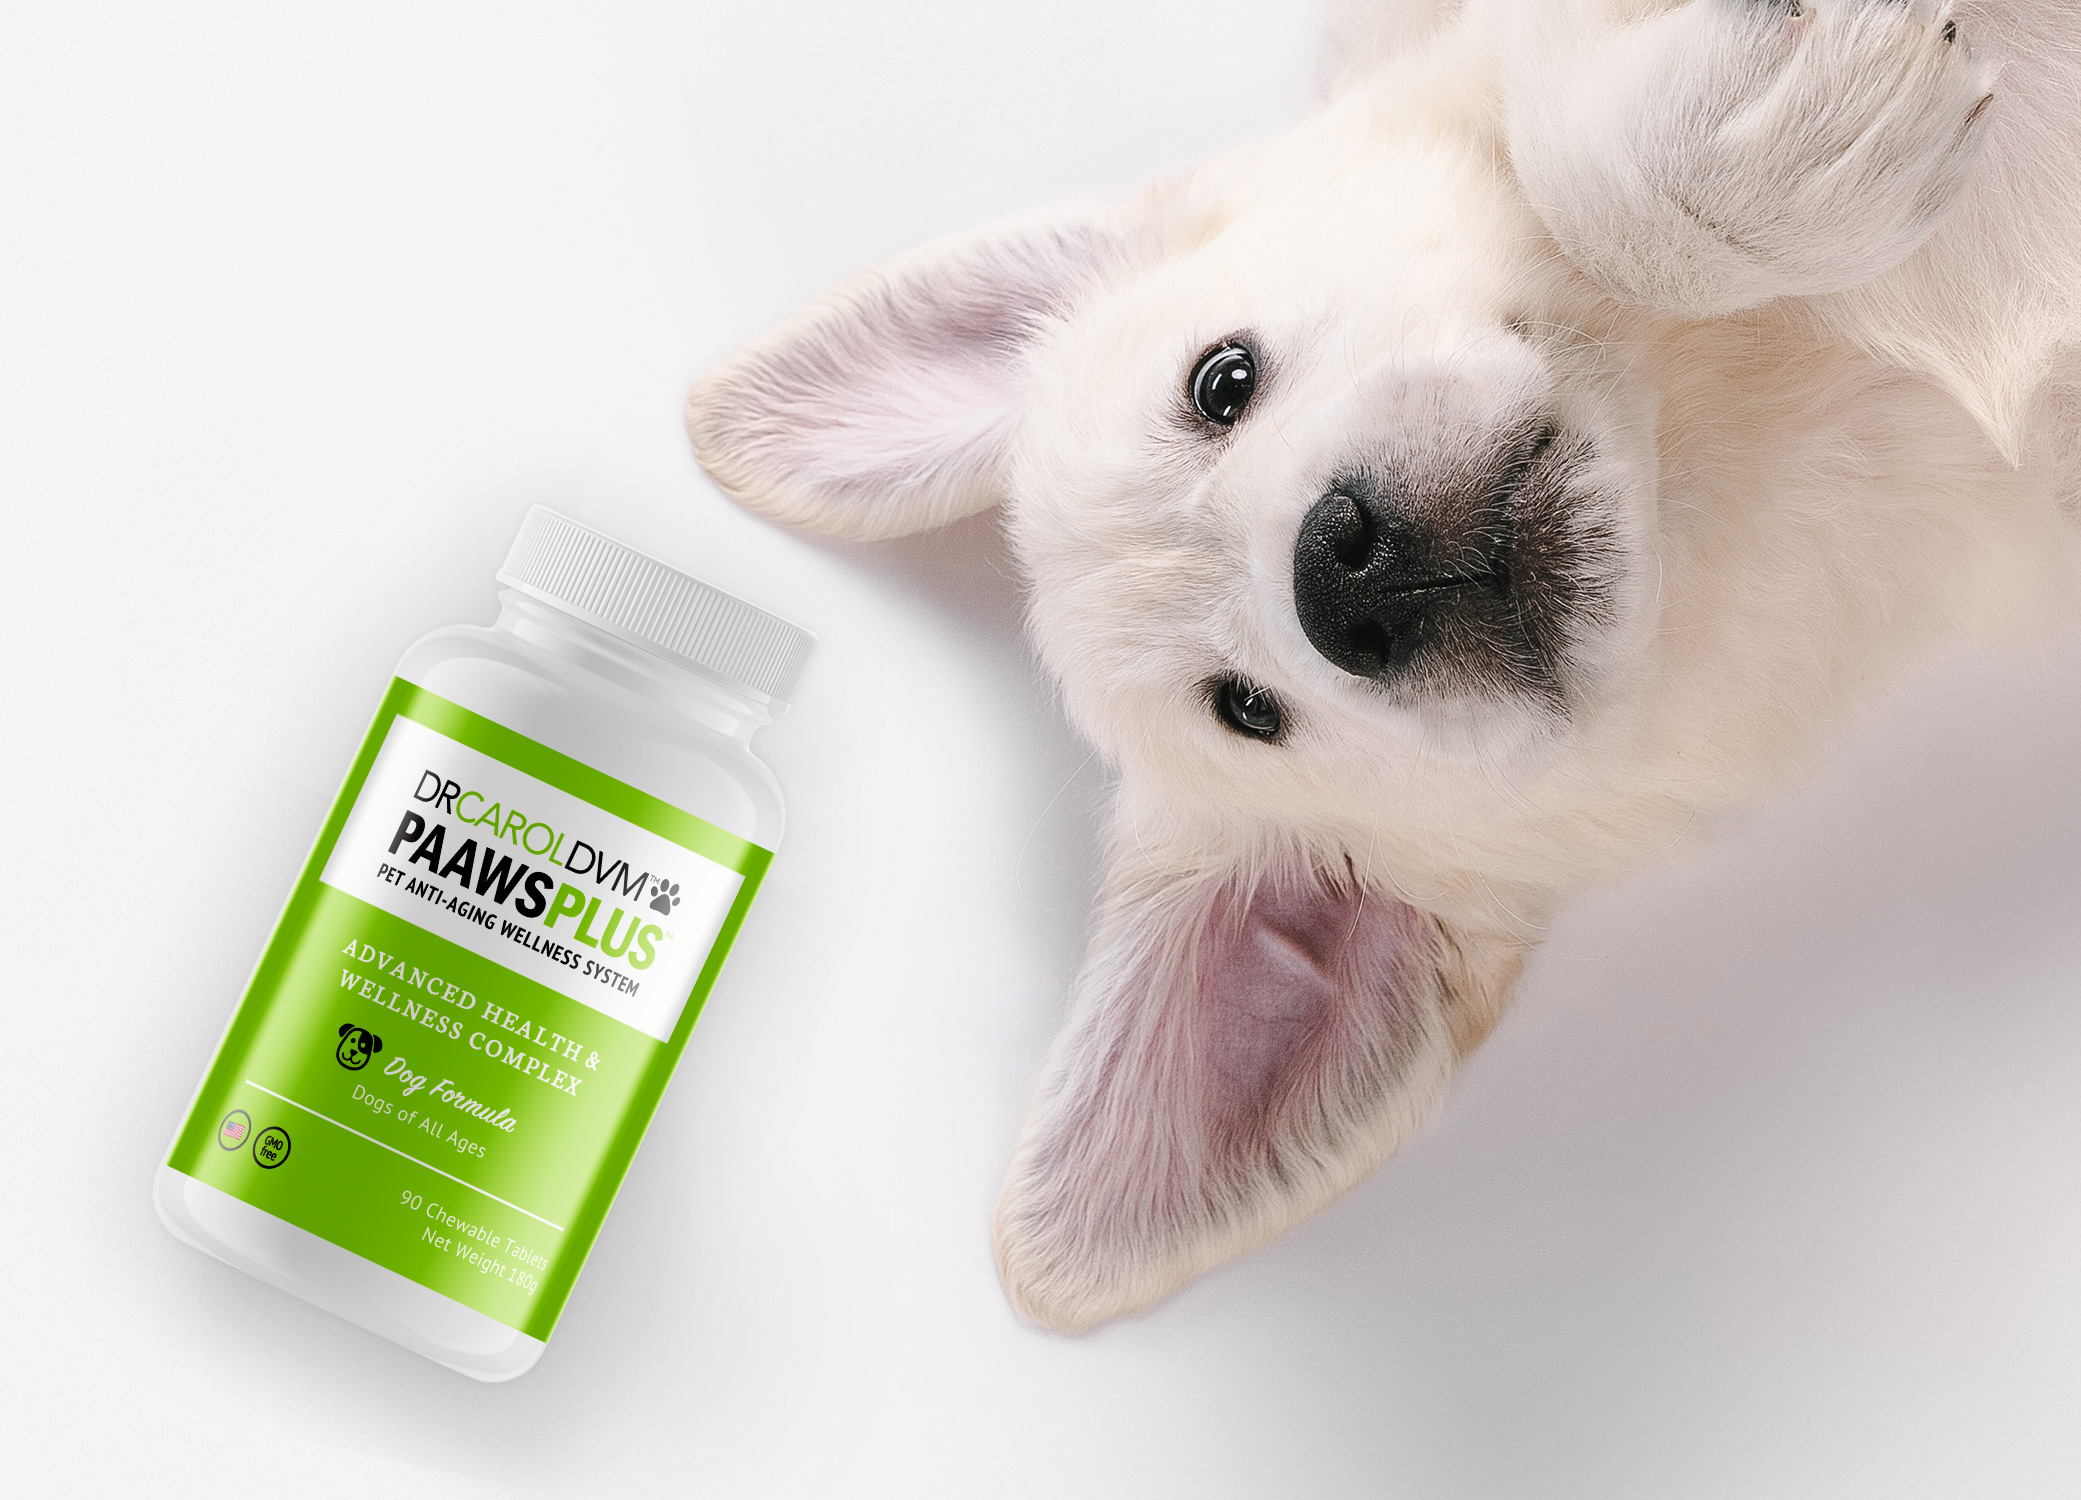 Dr. Carol pet product labels supplement bottle design next to friendly dog laying against light grey backdrop.